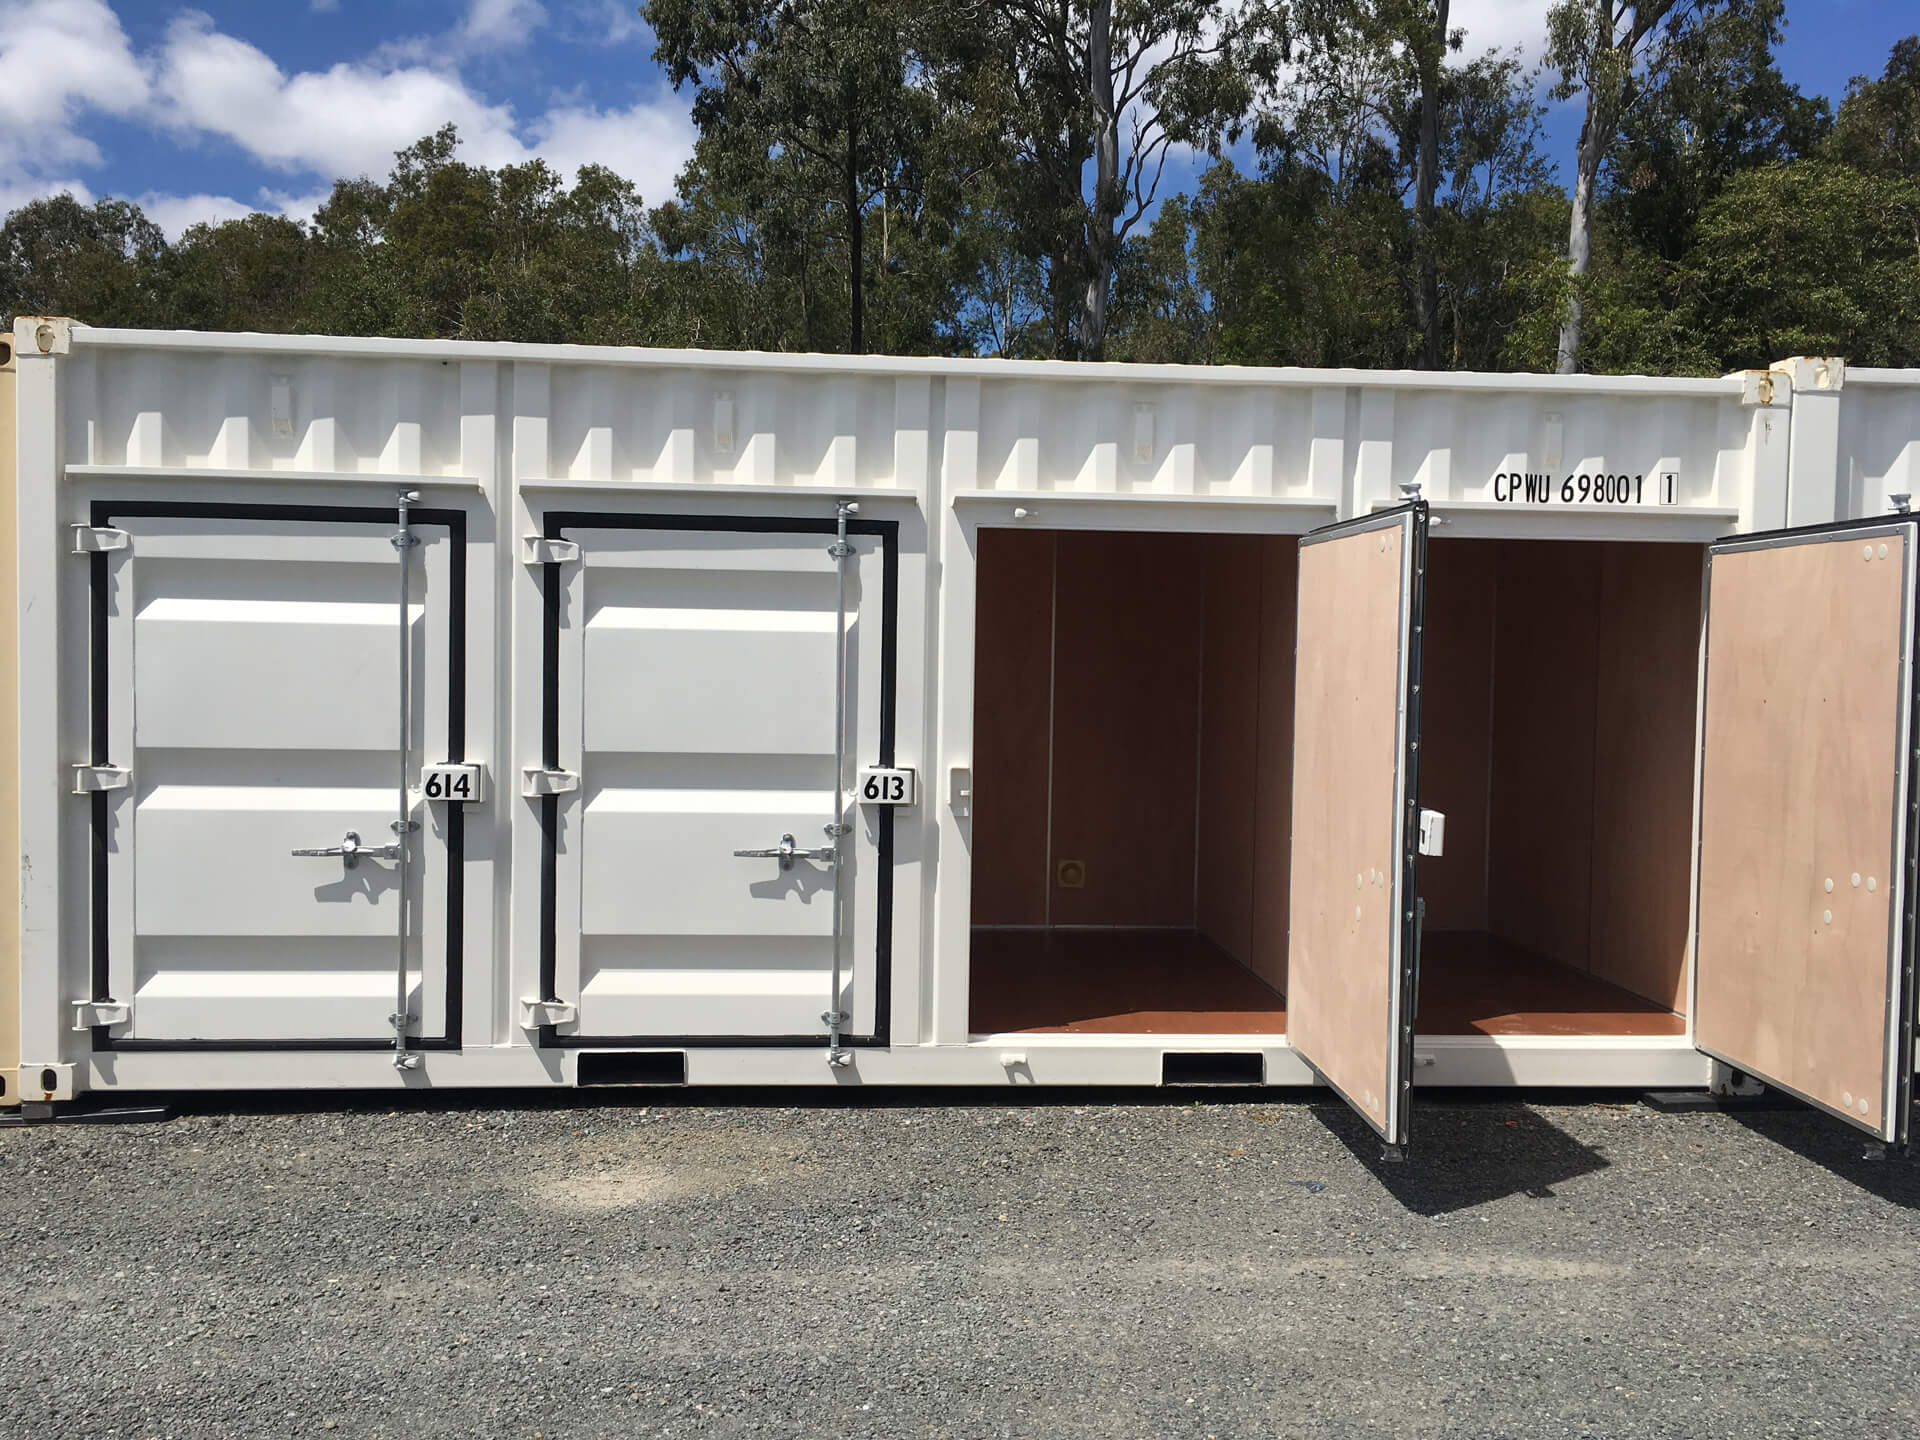 container storage spaces secure oasis storage Pacific Pines